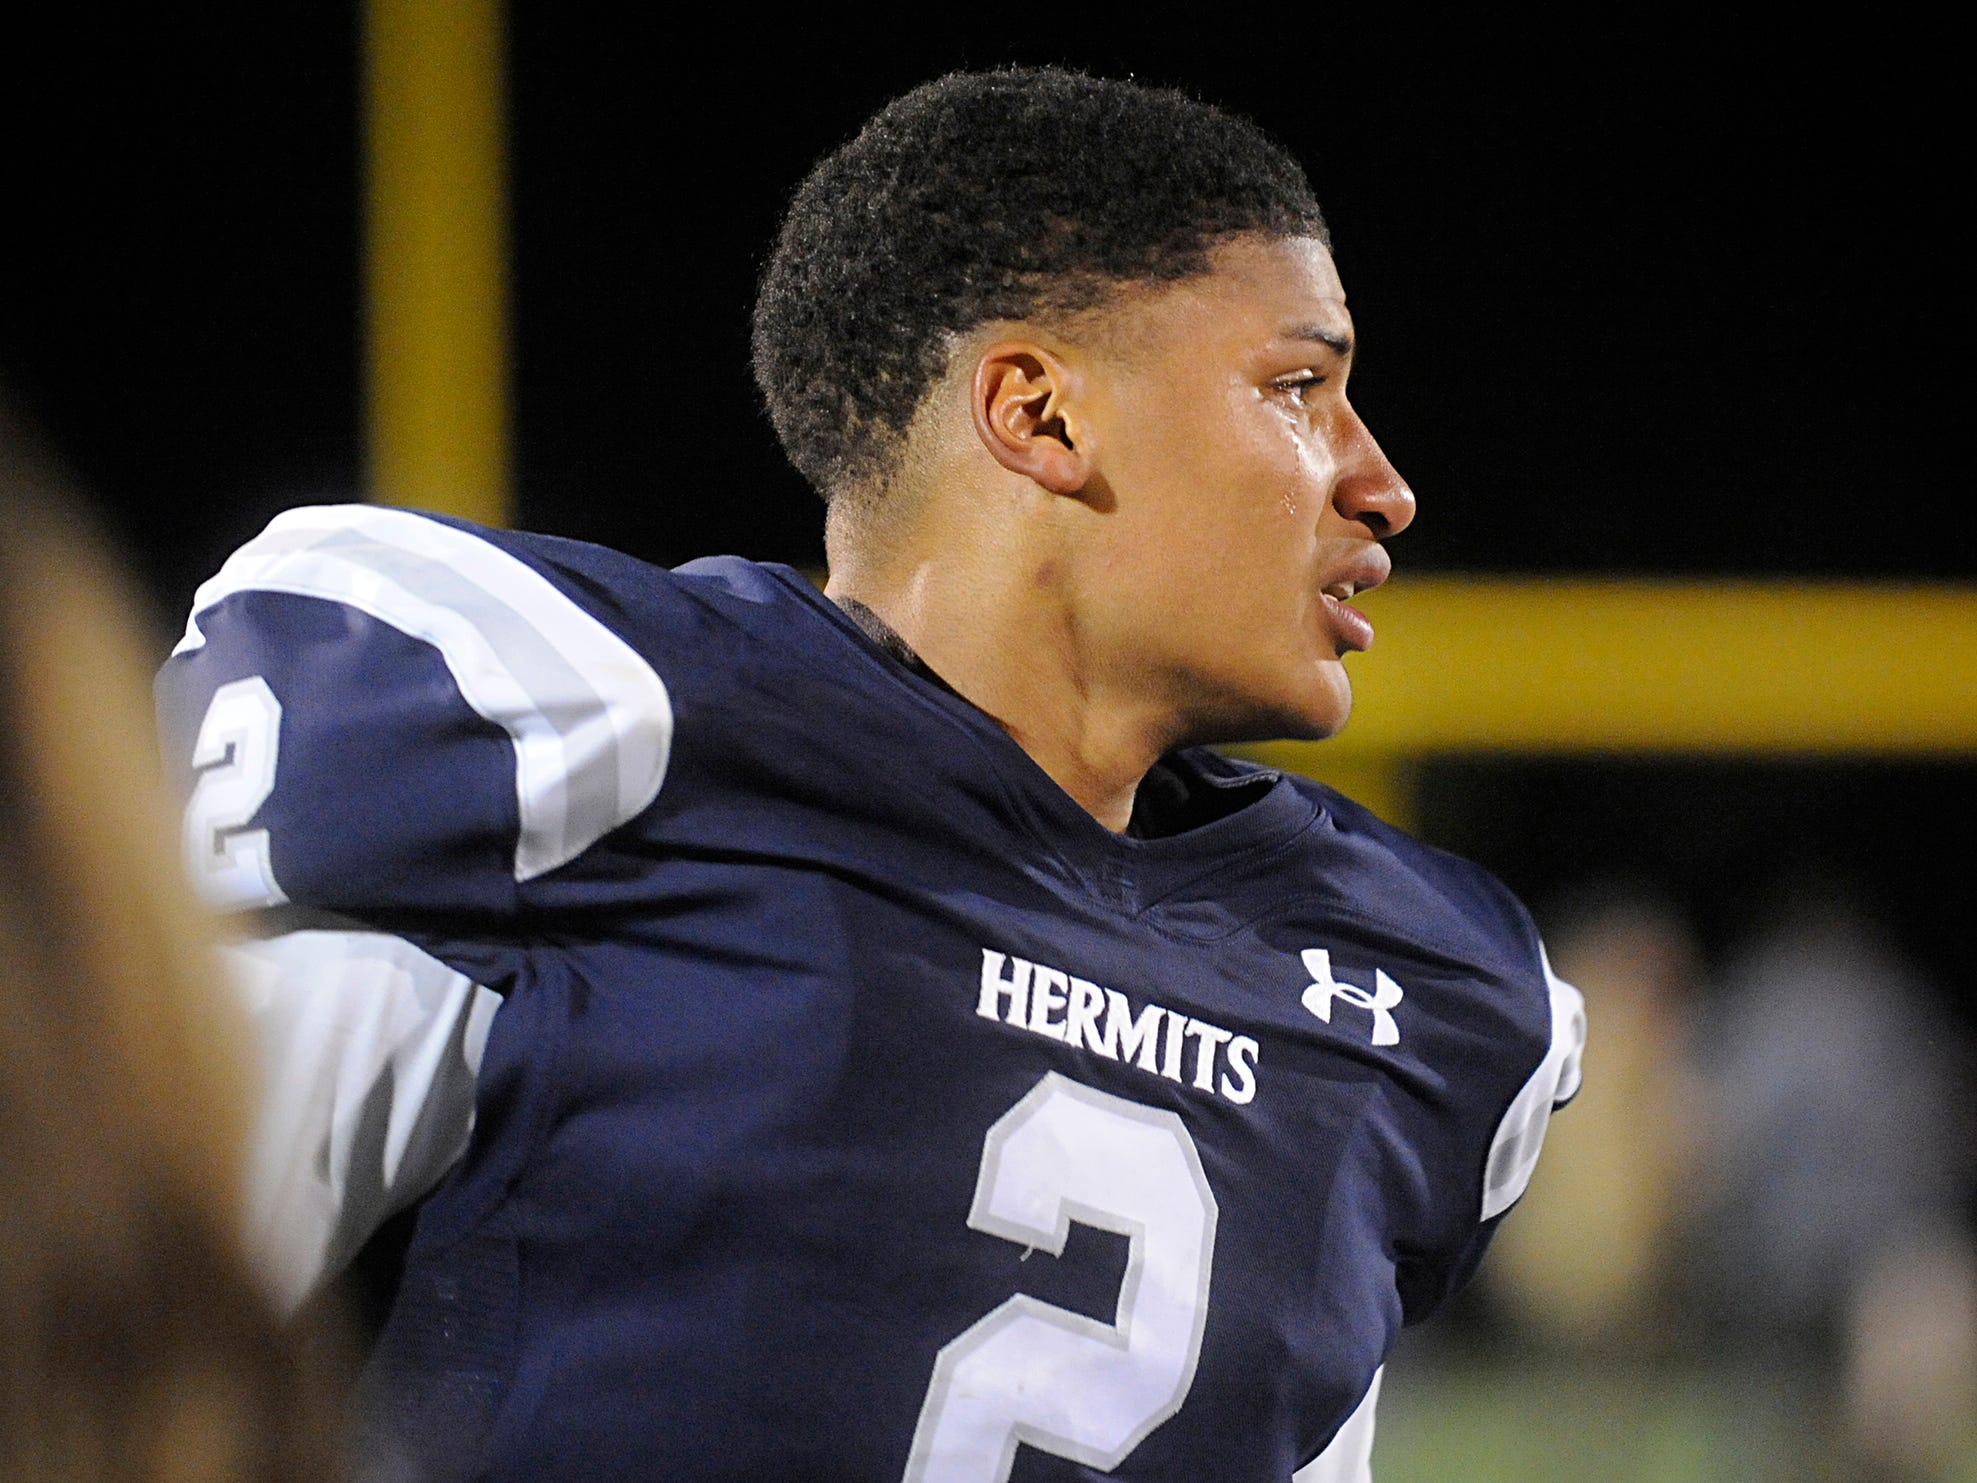 It was a emotional win for St. Augustine's QB, Chris Allen. The Hermits defeated the visiting Spartans, 27-14 on Friday, October 12, 2018.